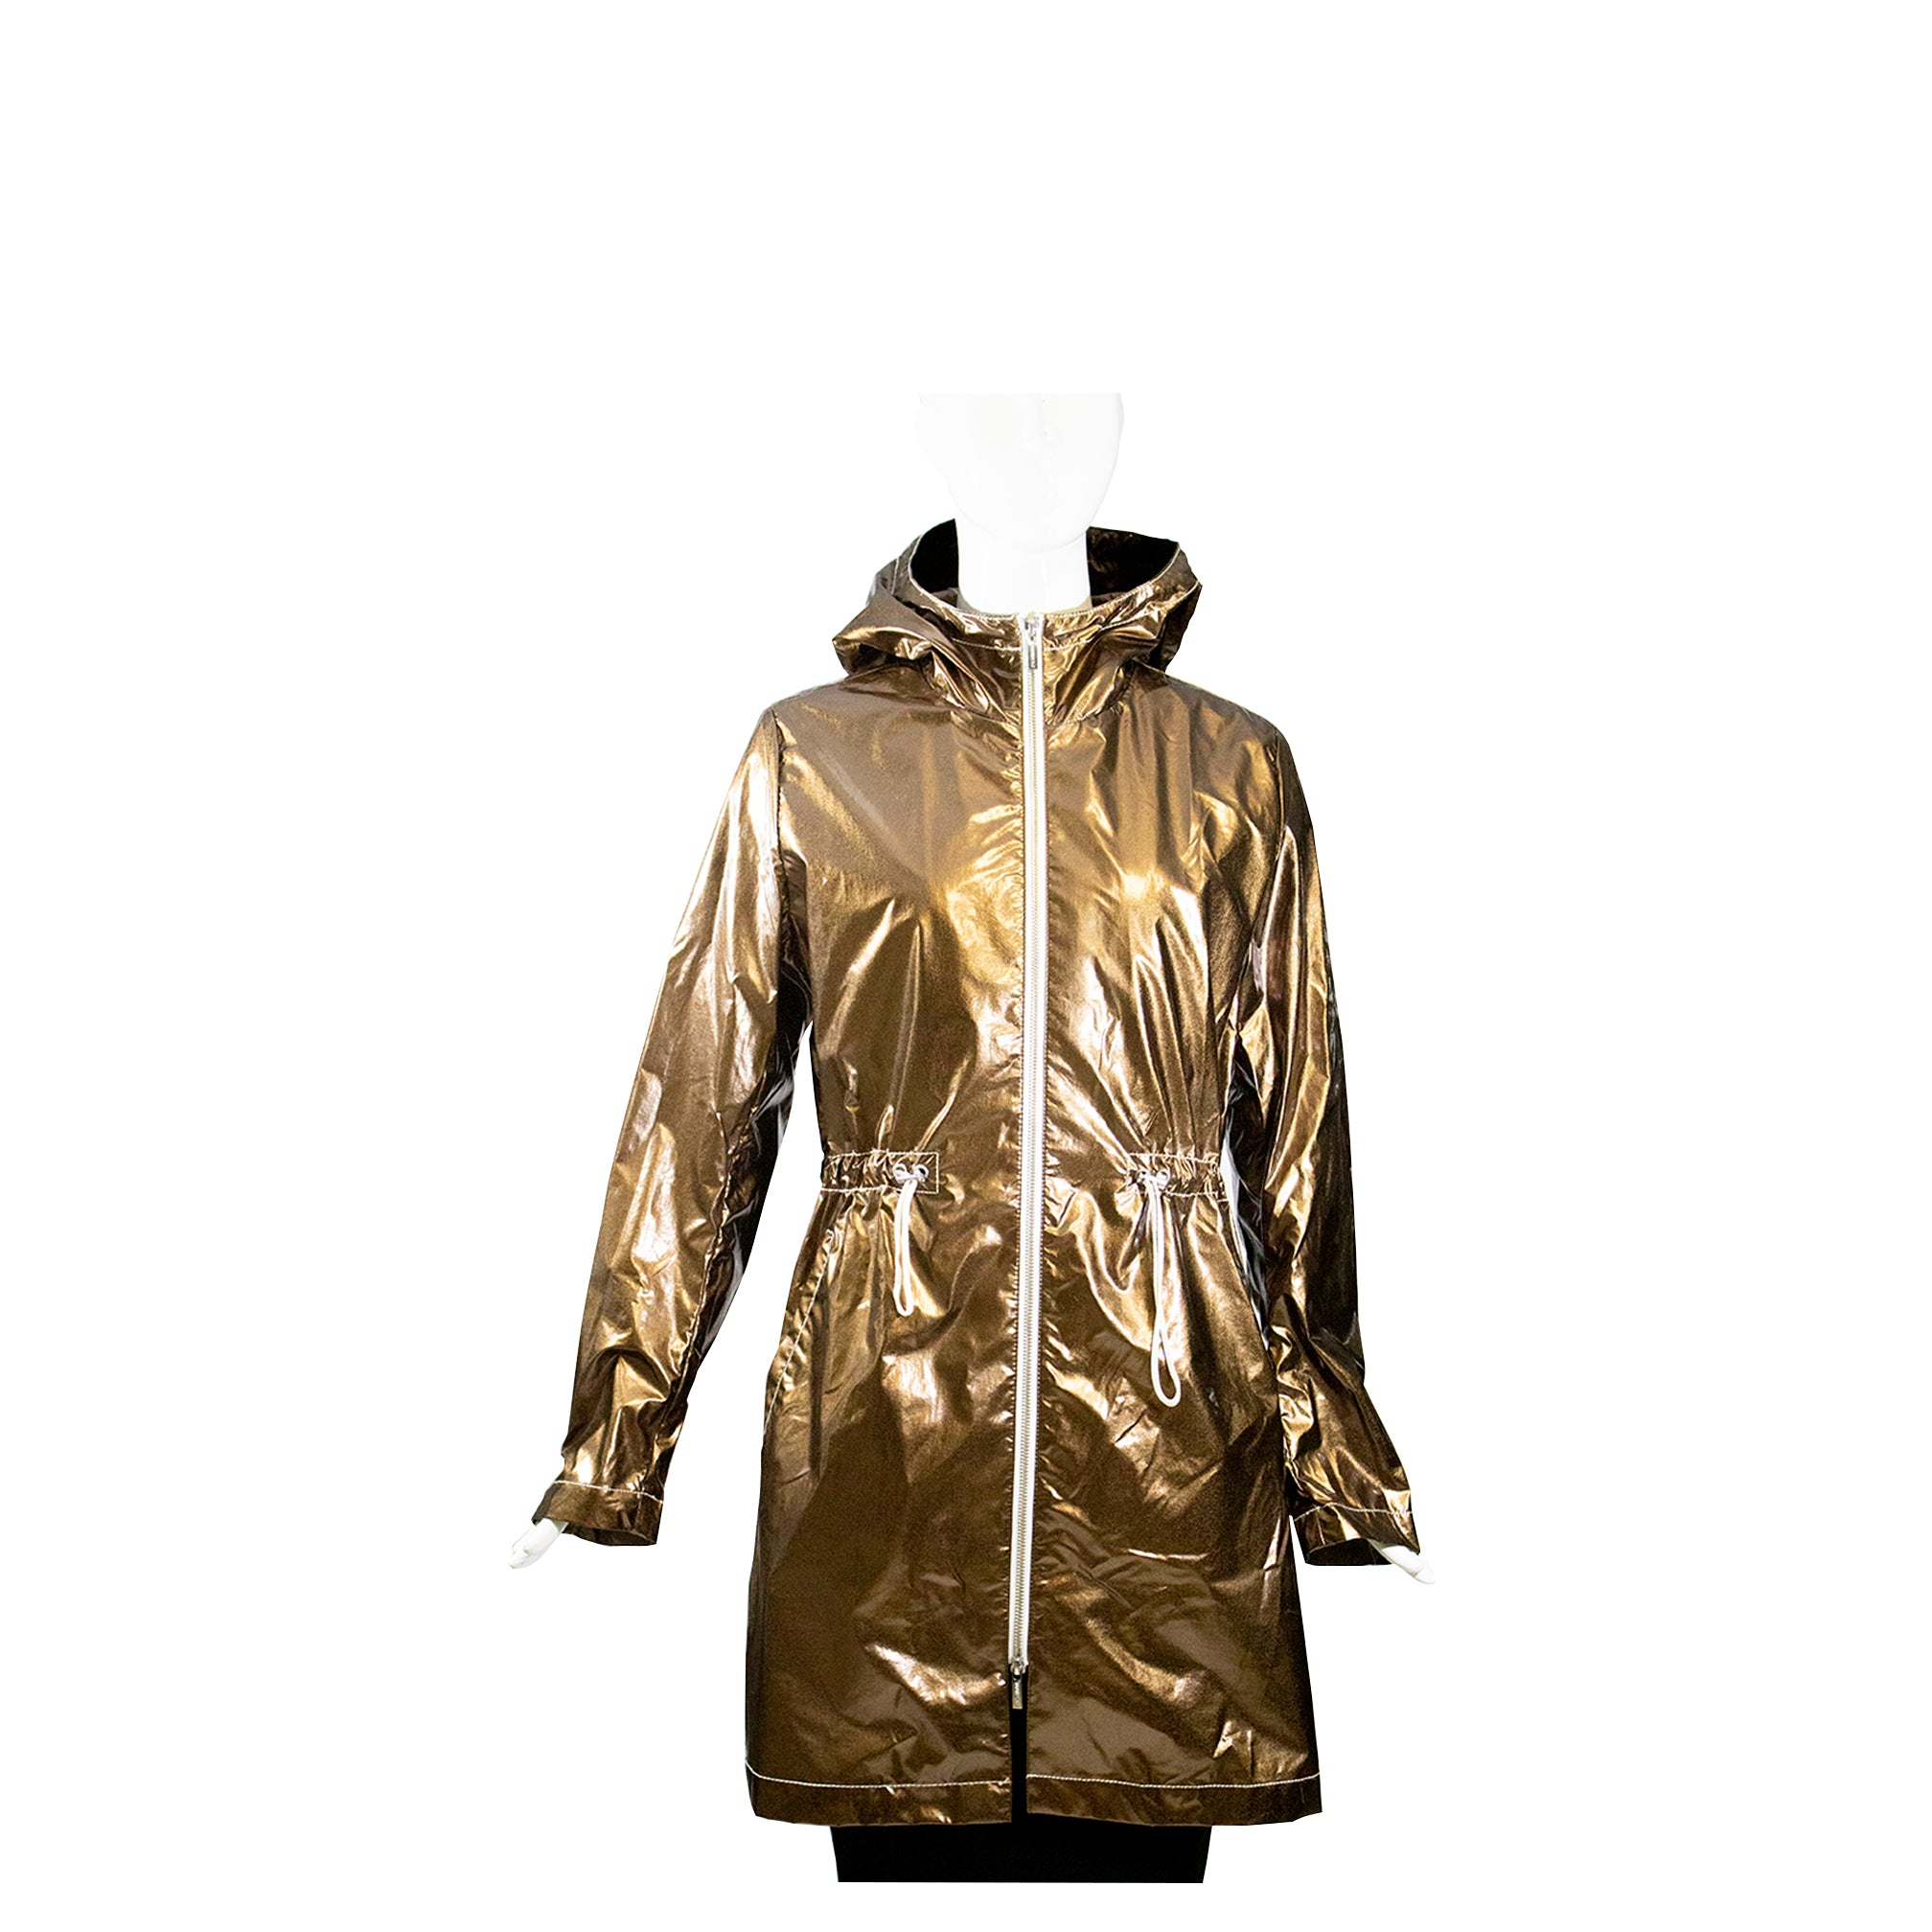 JANE POST Metallic Bronze Contrast Zip Hooded Rain Parka Trench Jacket S $475